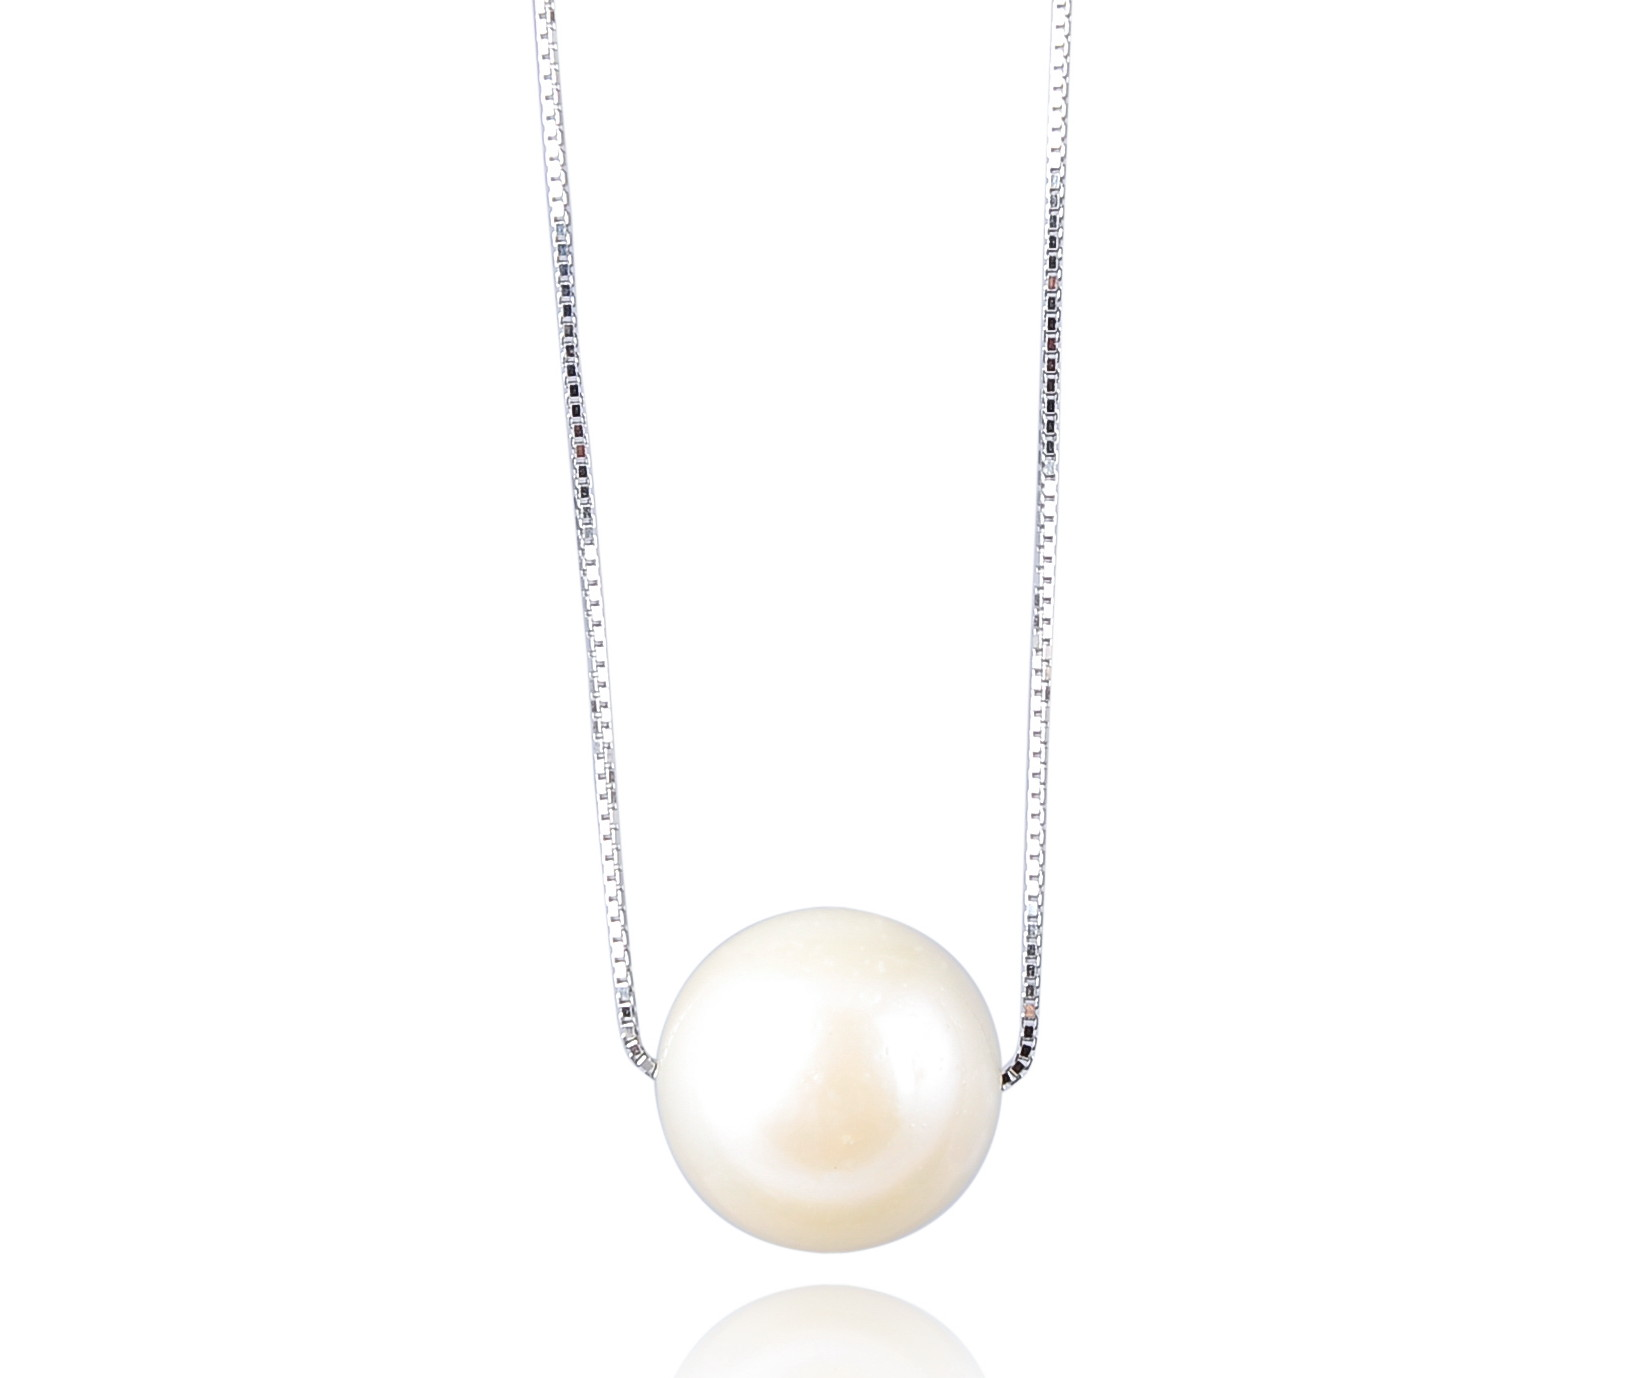 Huge 13.5 mm AA- Cream South Sea Pearl Solitaire Necklace -nk263